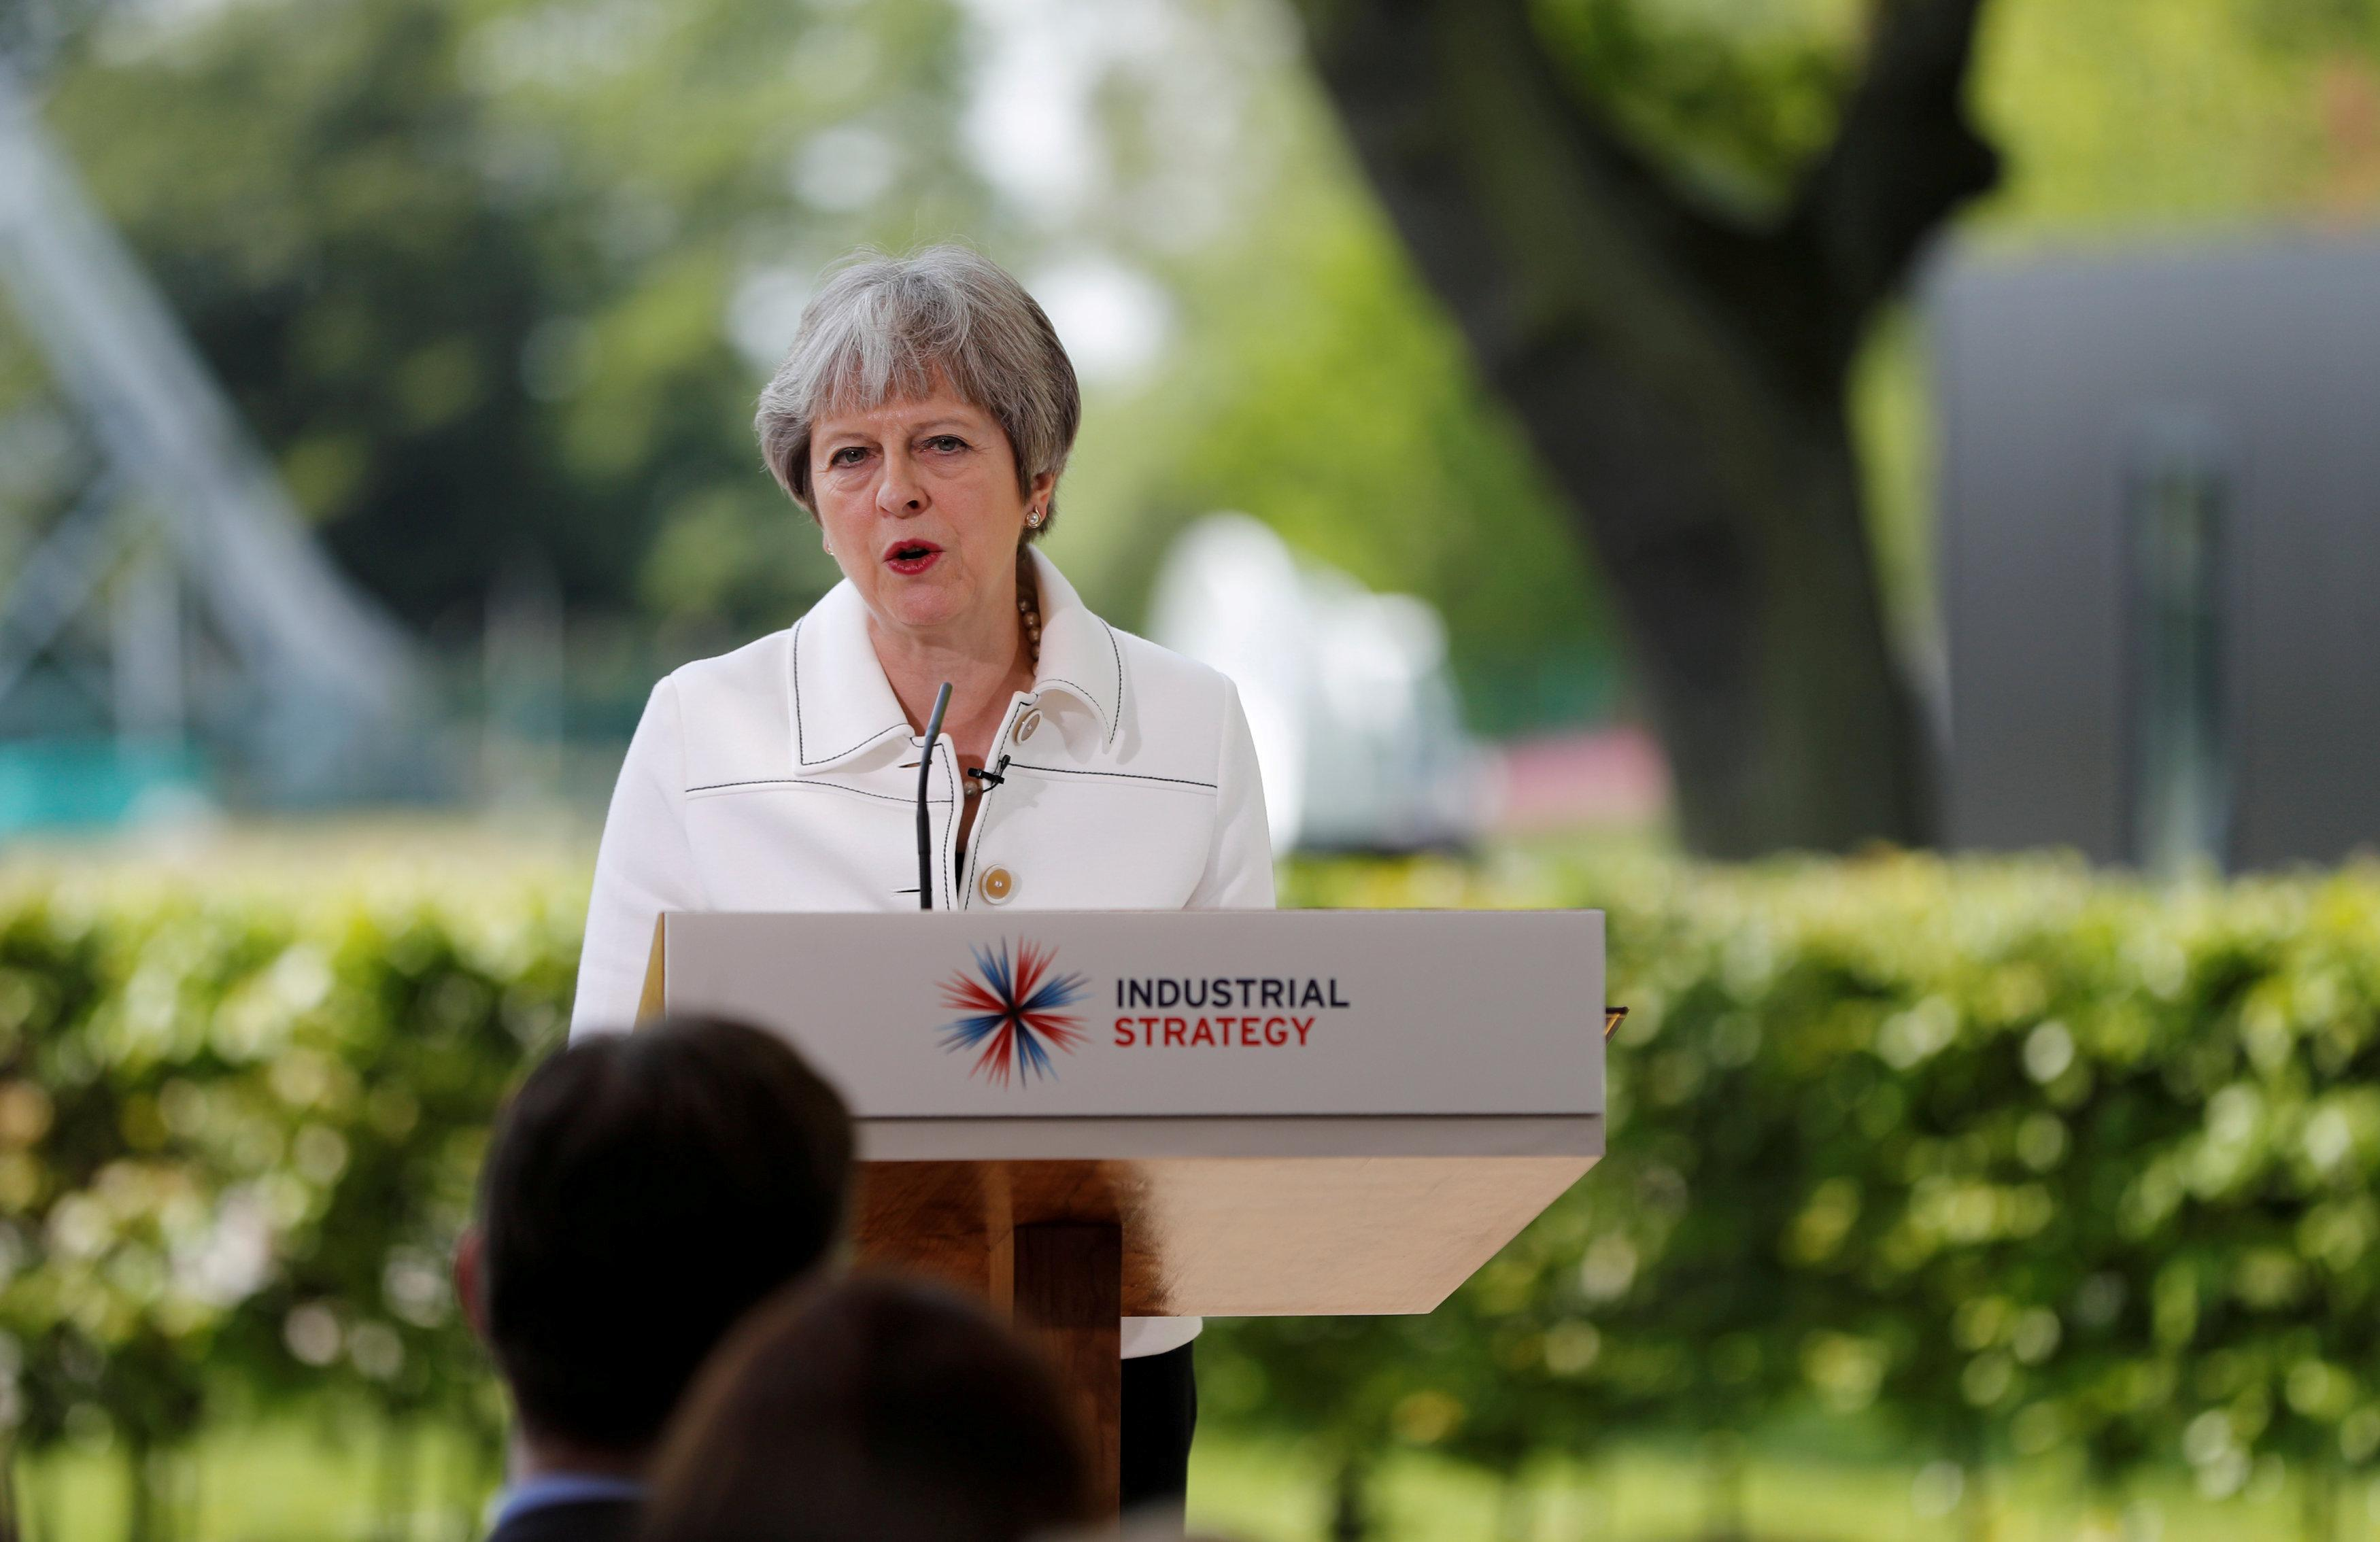 Britain's Prime Minister, Theresa May, speaks on science and the Industrial Strategy at Jodrell Bank in Macclesfield, Britain May 21, 2018.  Darren Staples/Pool